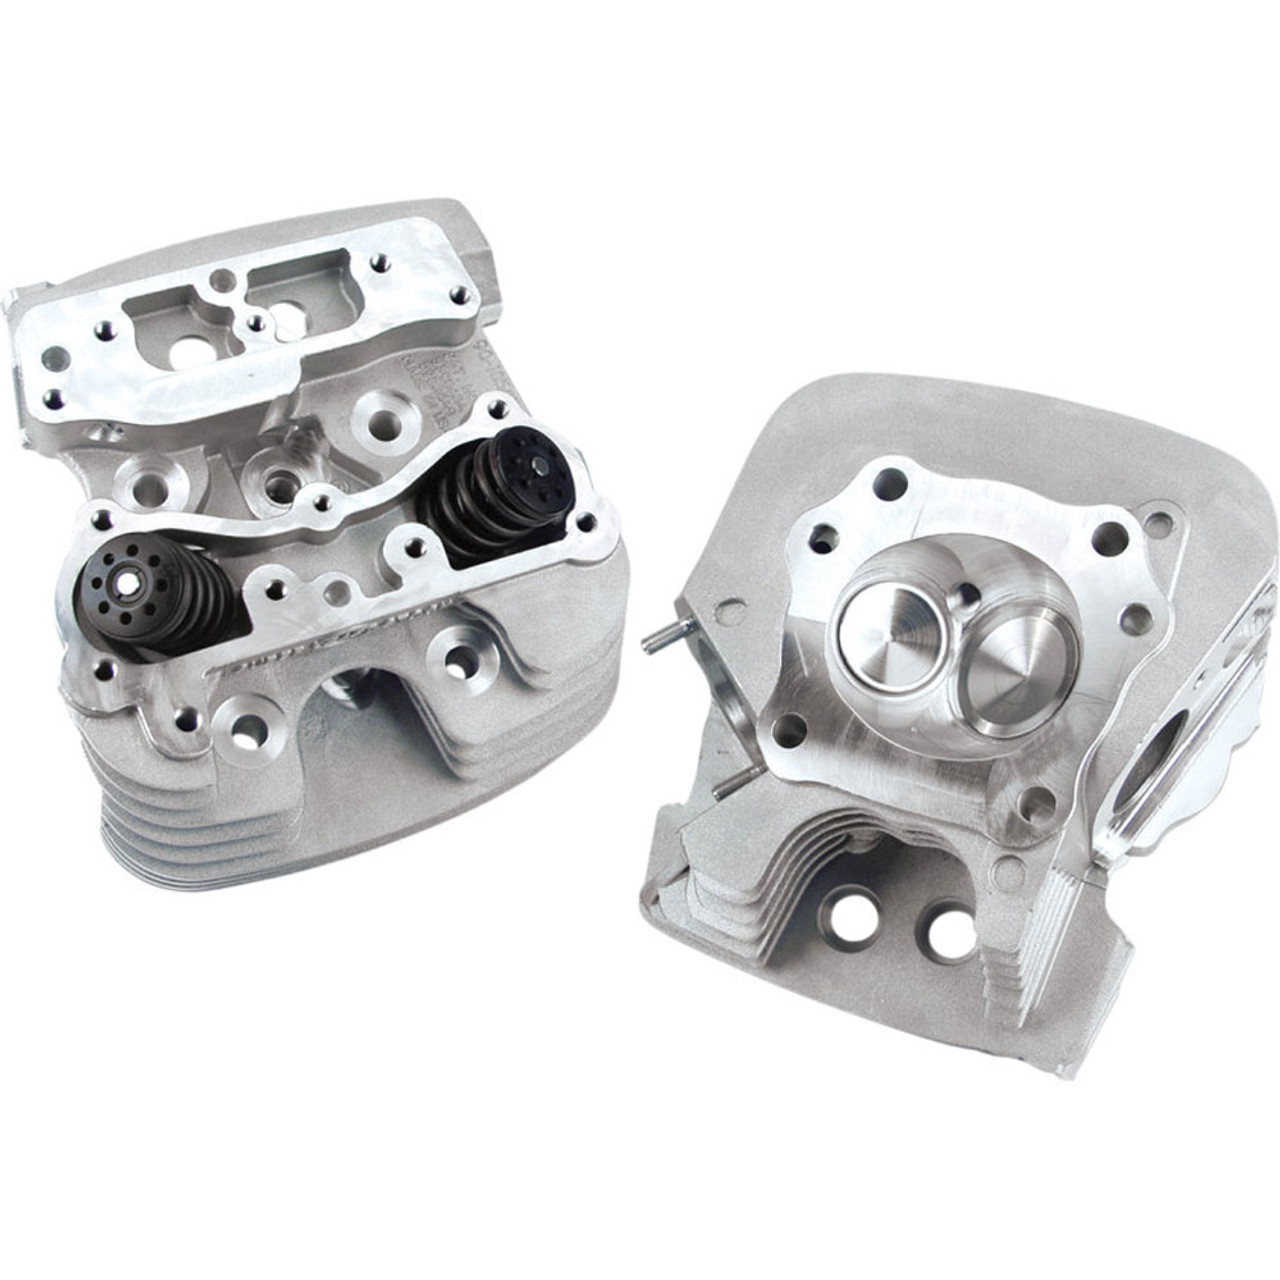 S&S Super Stock 79cc Cylinder Heads for 2006-2017 Harley Twin Cam - Silver